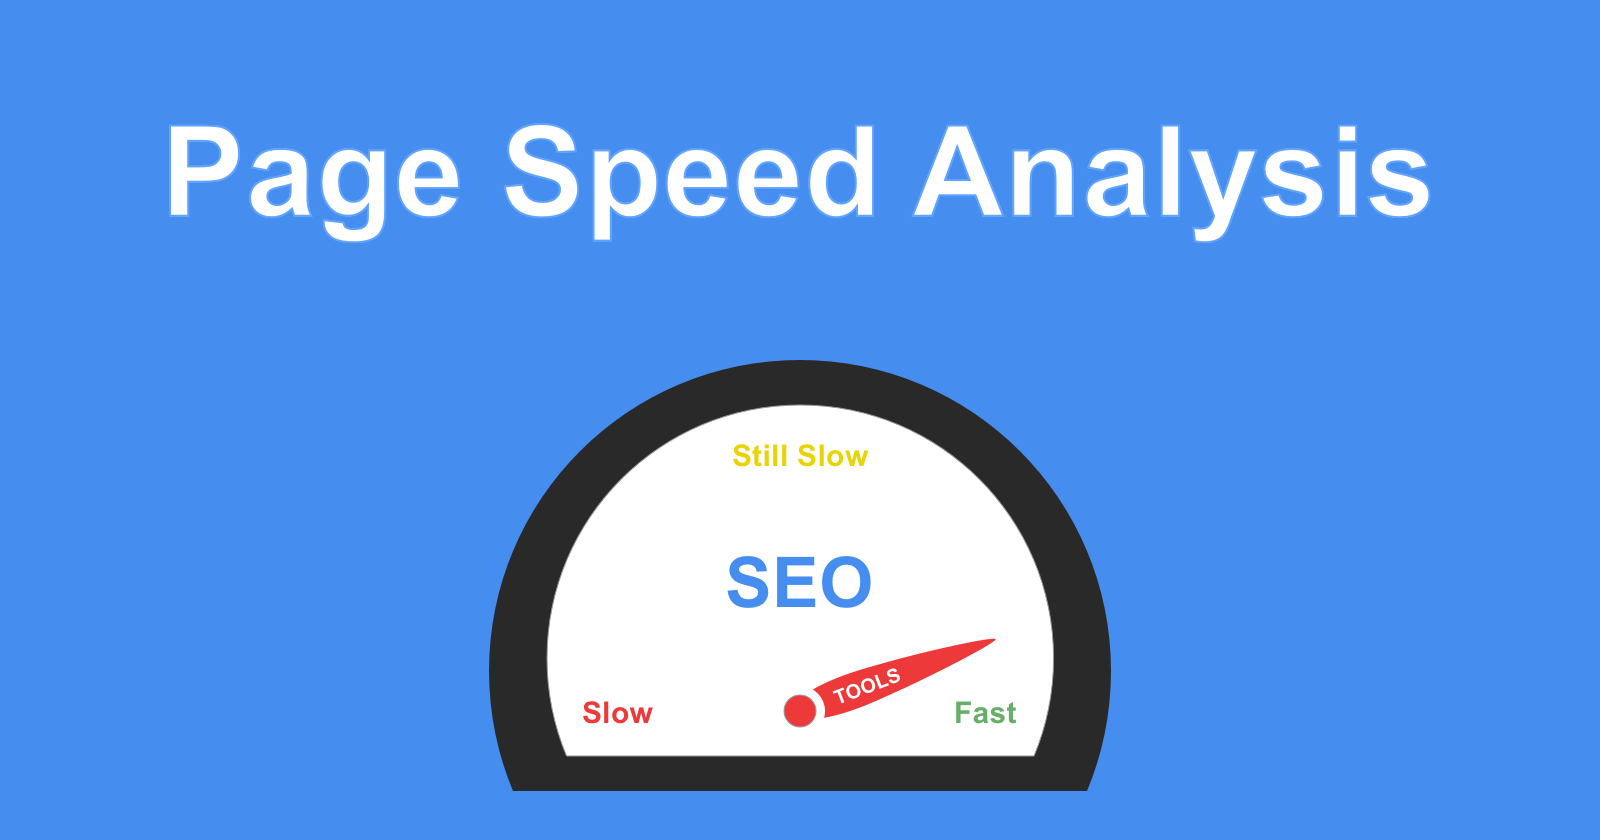 Page Speed Analysis